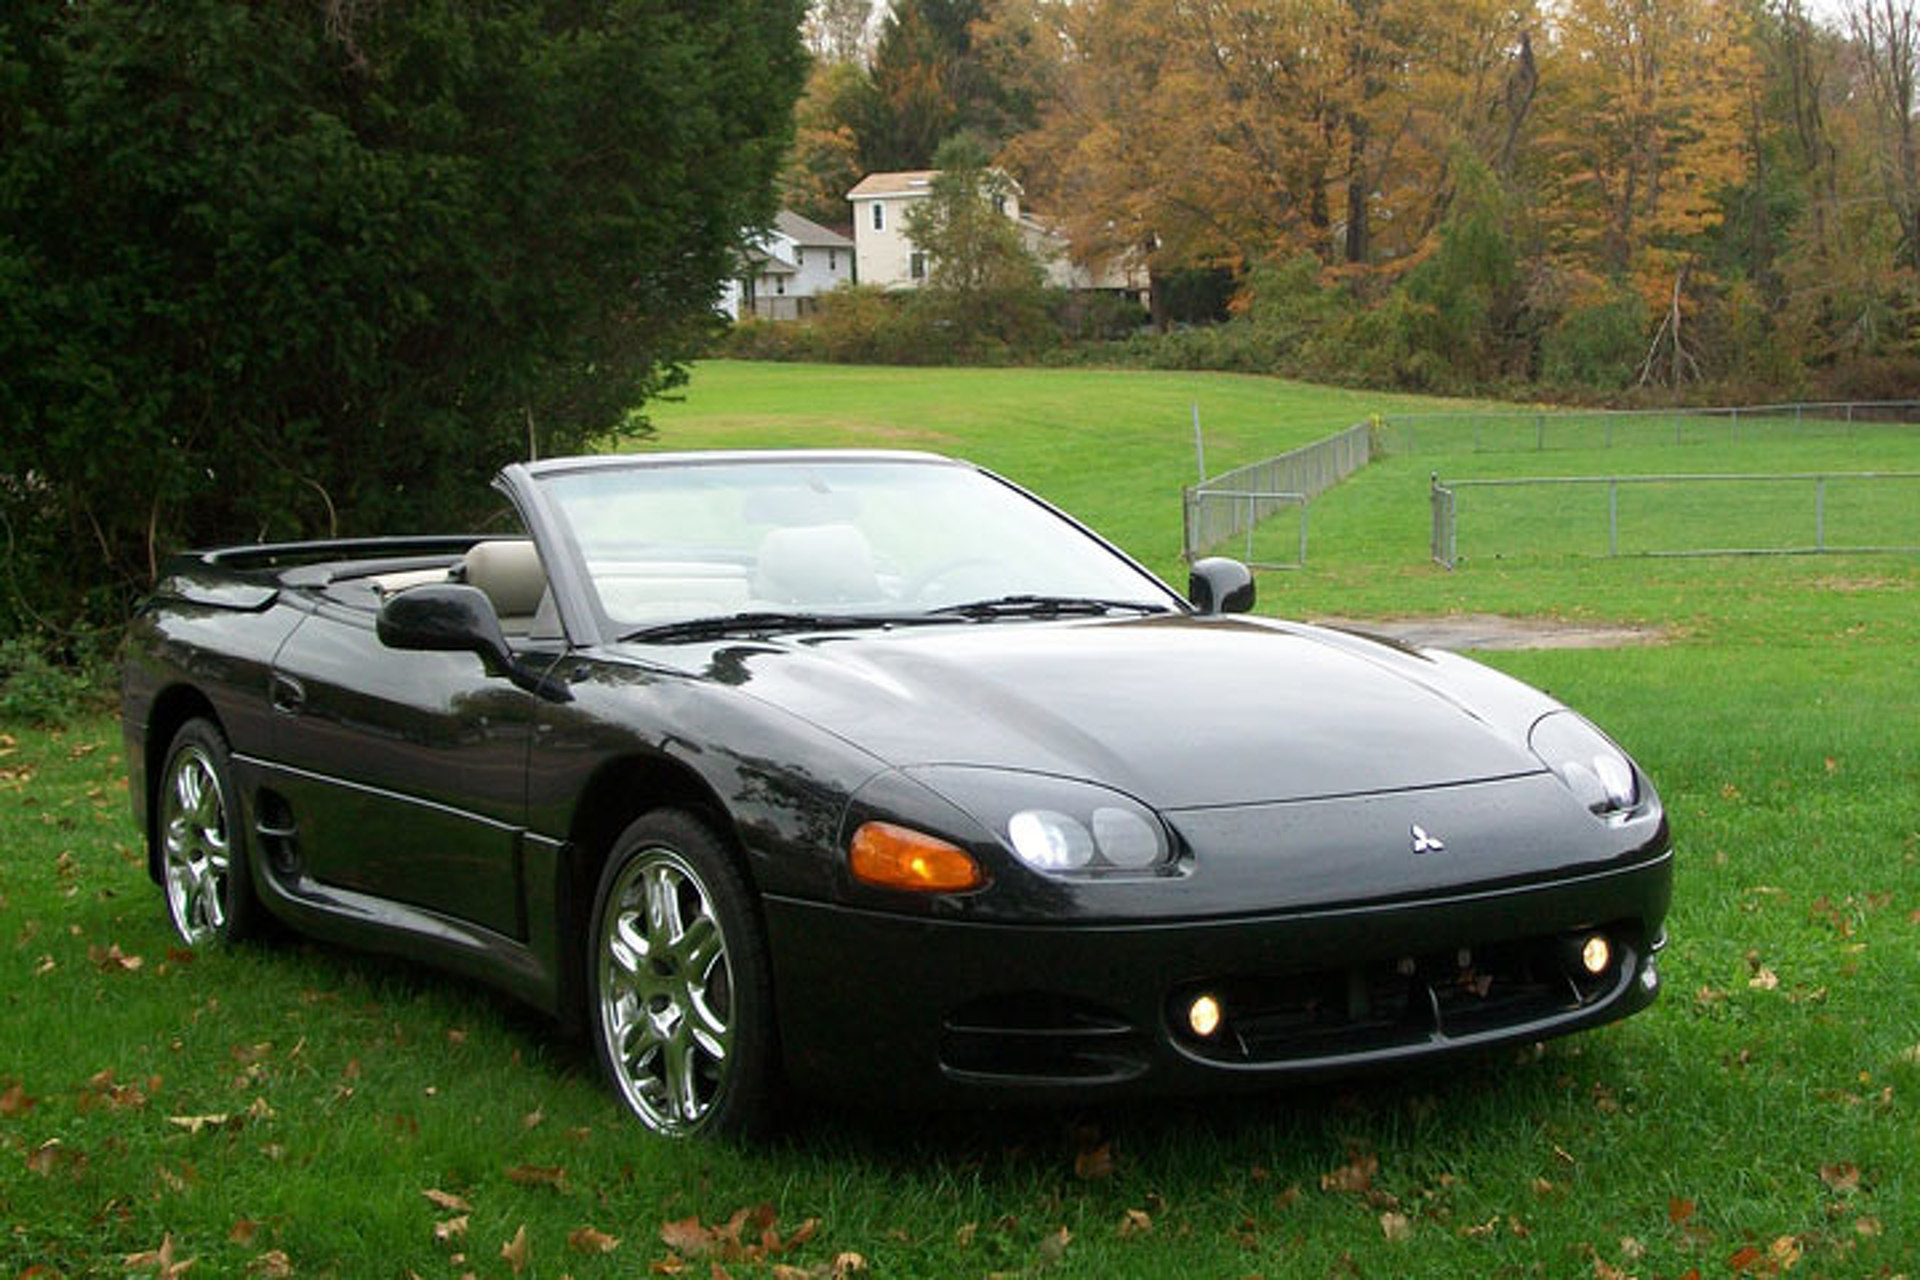 The Top 5 Forgotten Convertibles of the '90s